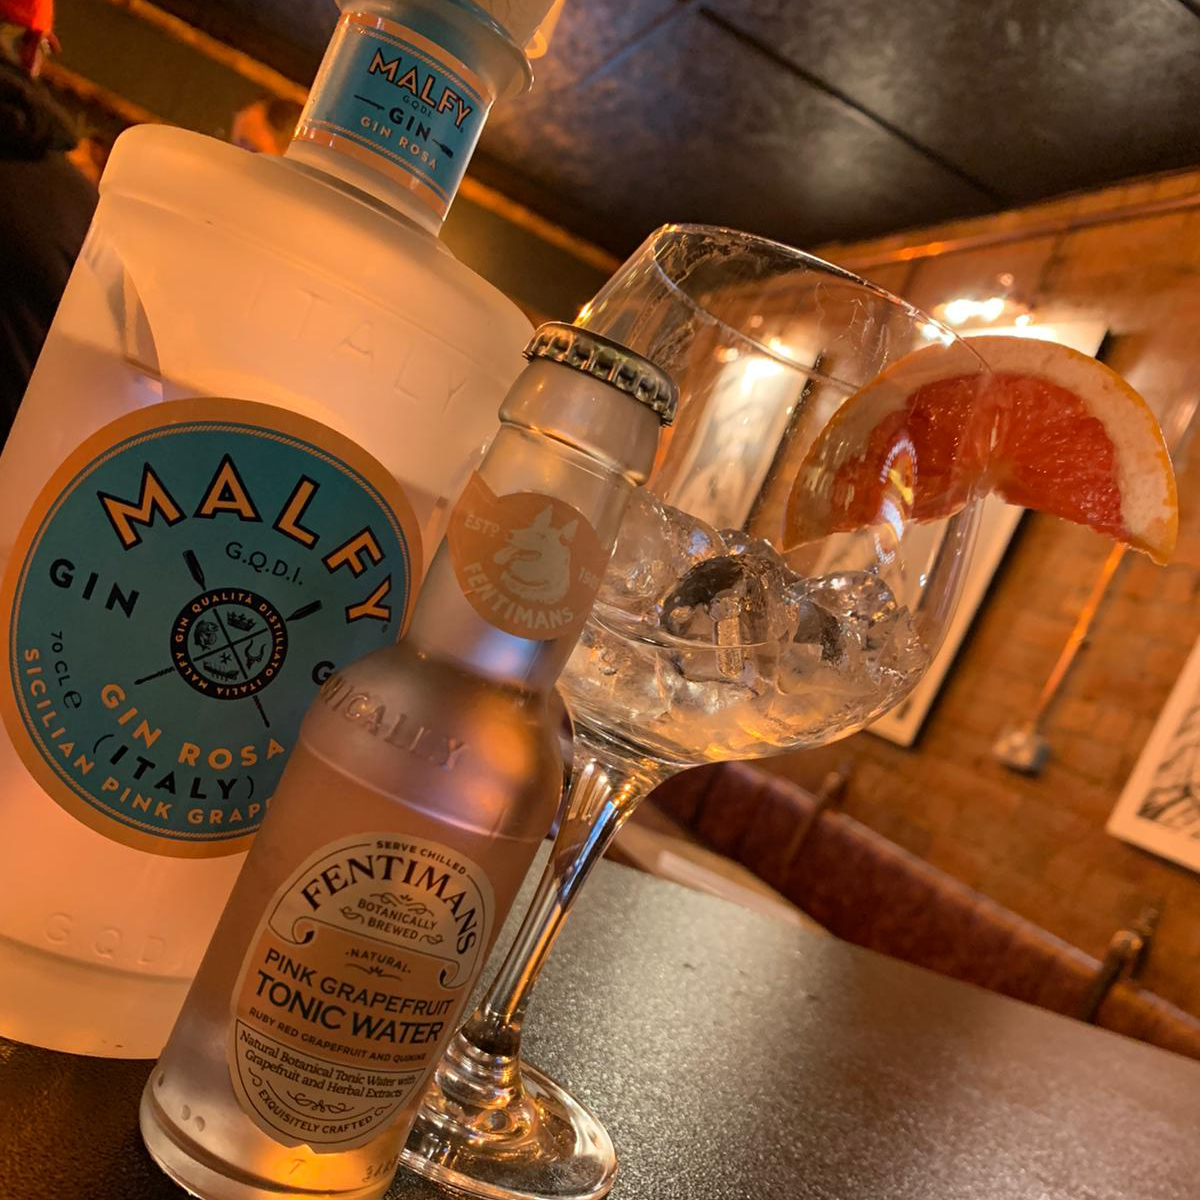 For all the grapefruit fans   This is a beauty  Malfy Gin   #gin #ginbar #ginlovers #ginoclock #grapefruit #doubleupfreemixer #doubleup #localbusiness #loveyourlocal #supportyourlocal #smallbusinesspic.twitter.com/A1ZP3mmLwj